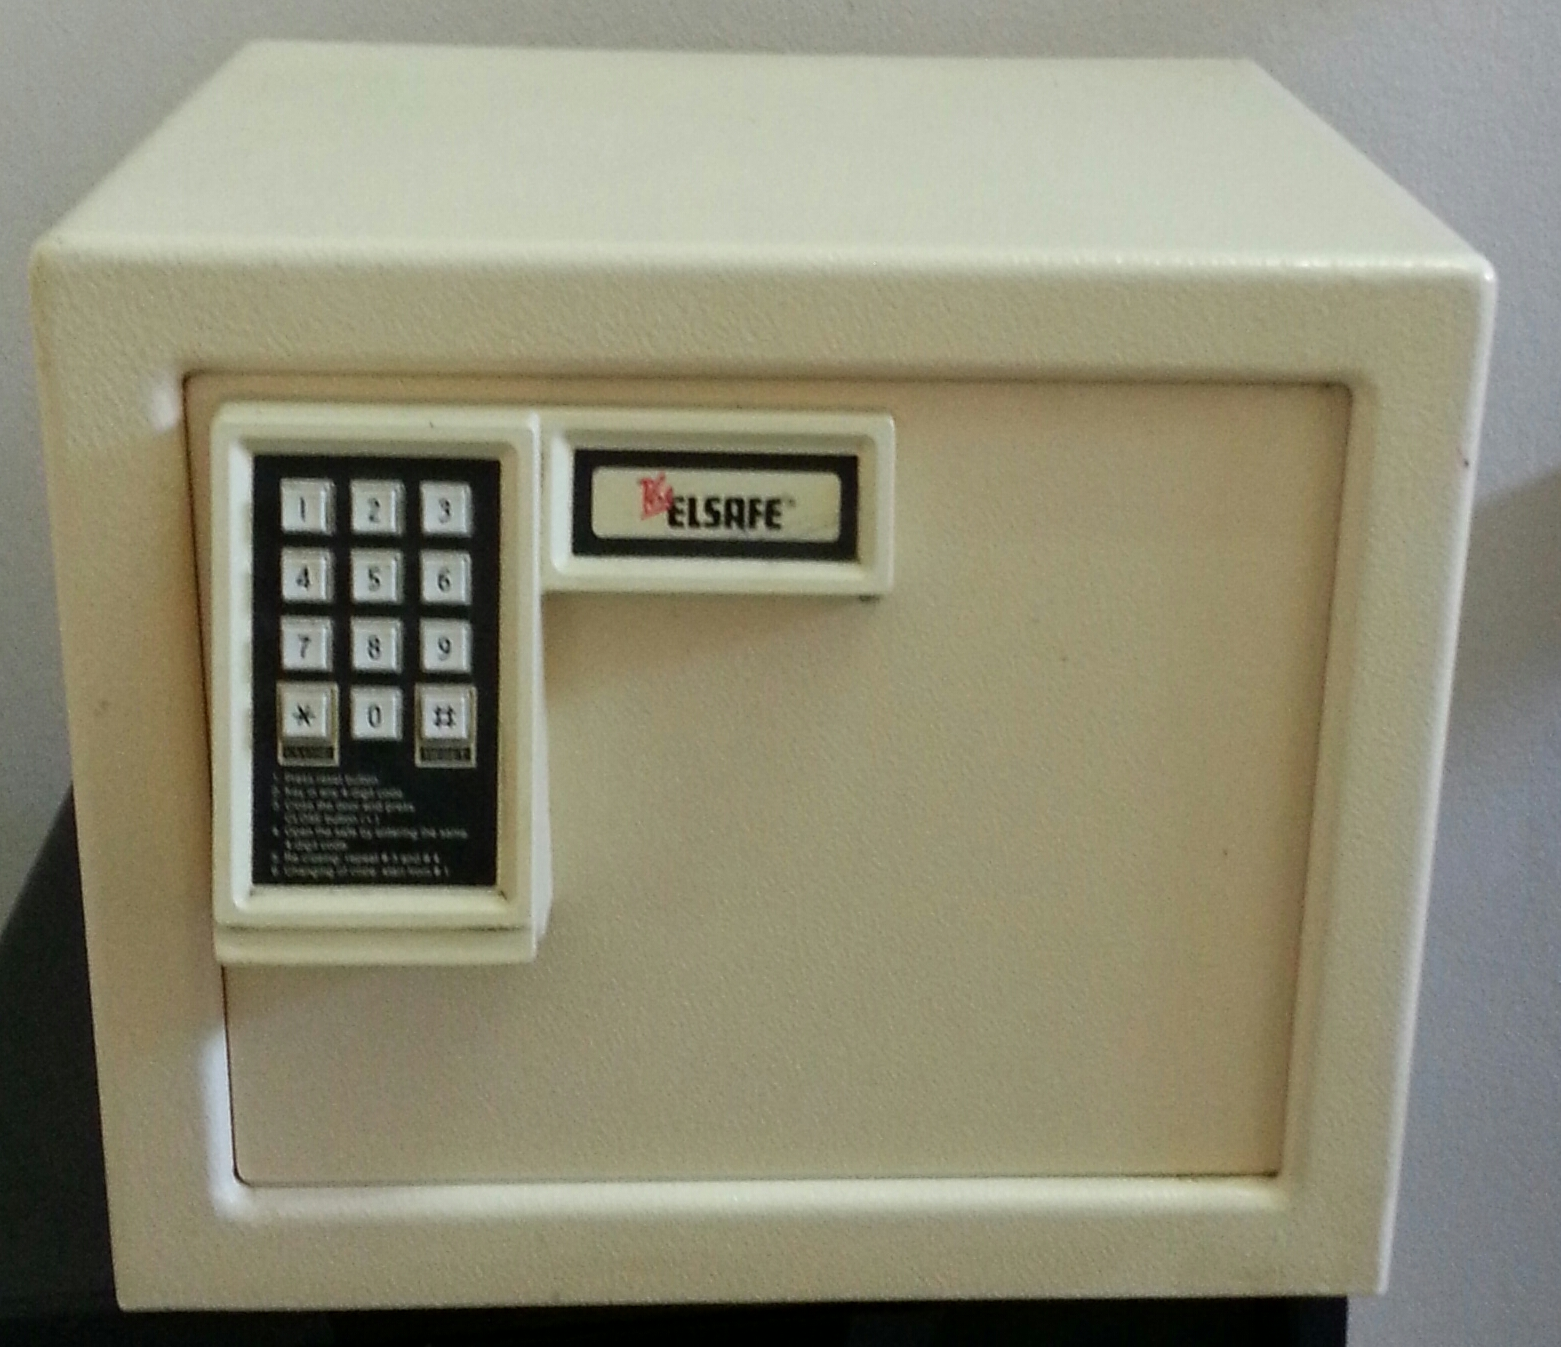 safety Deposit Boxes - Elsafe